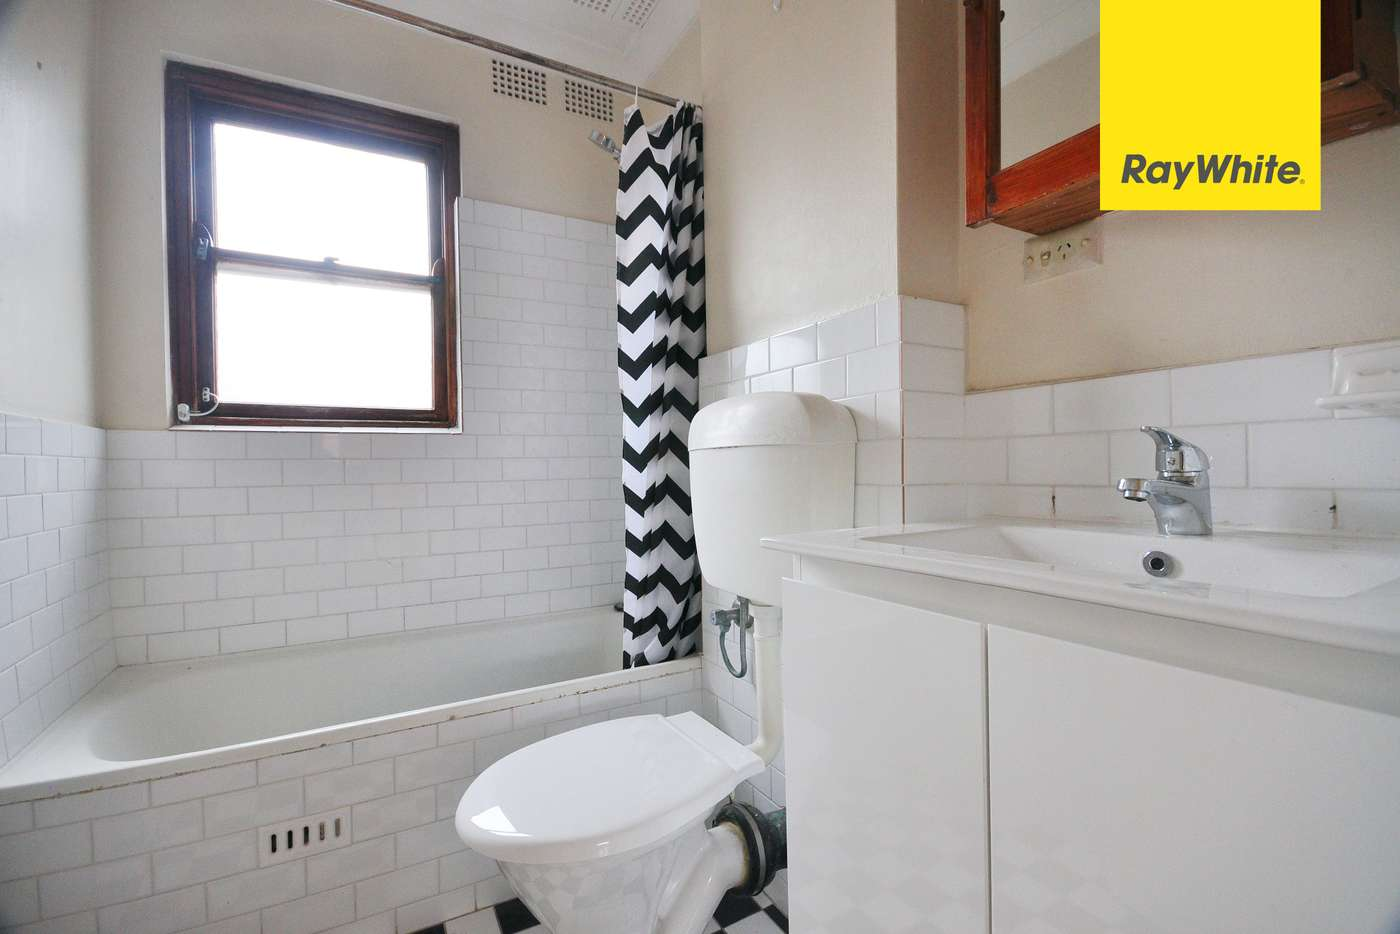 Seventh view of Homely unit listing, 4/14 Swete Street, Lidcombe NSW 2141